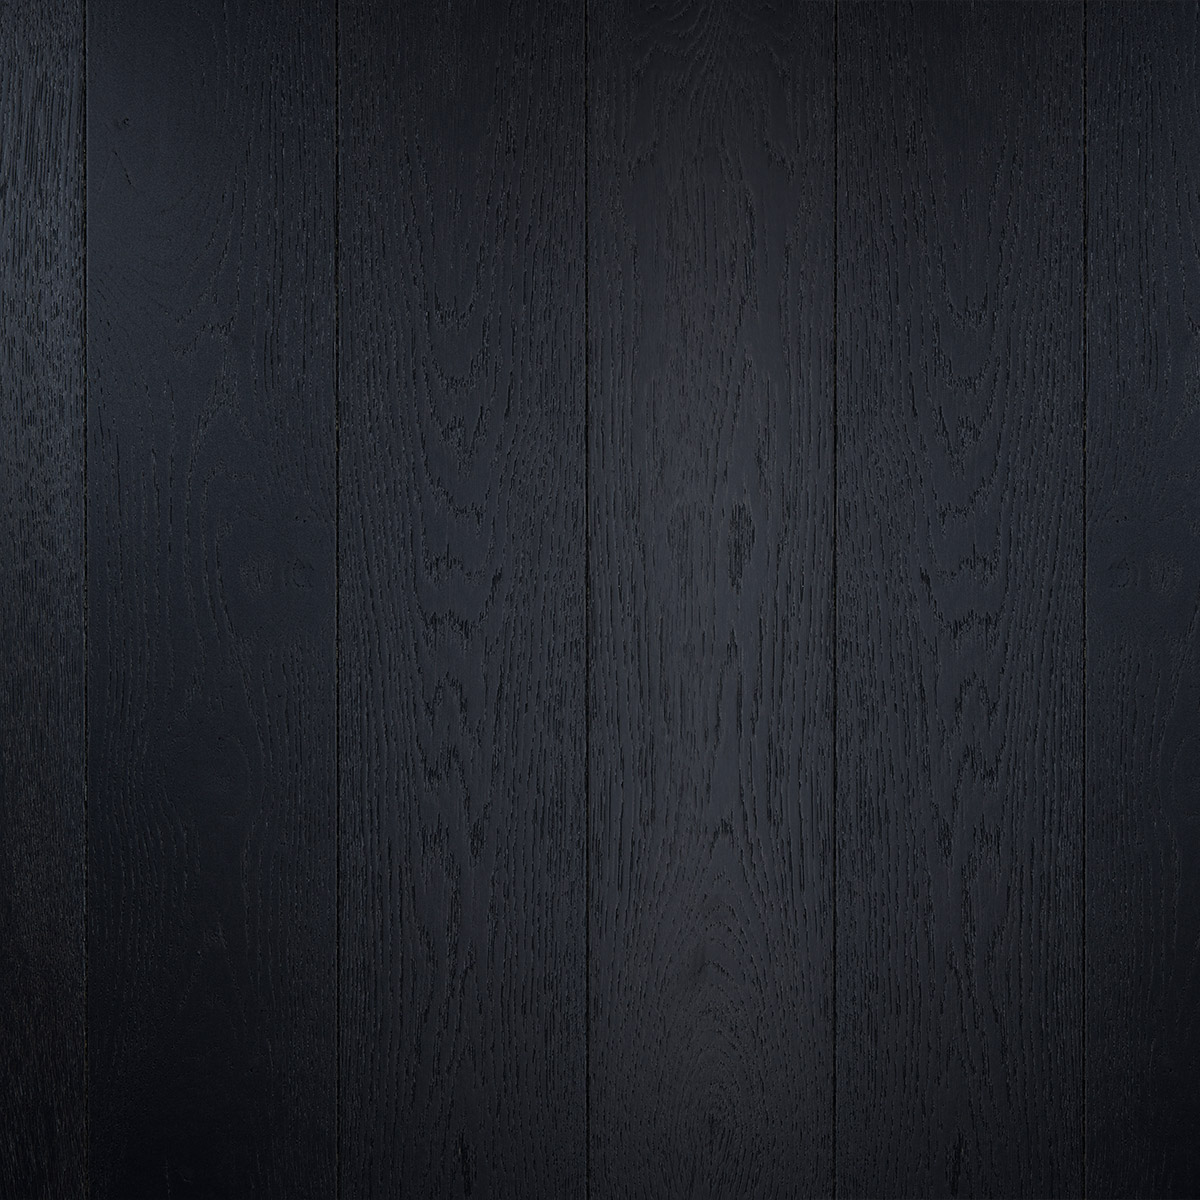 Dark Timber Flooring